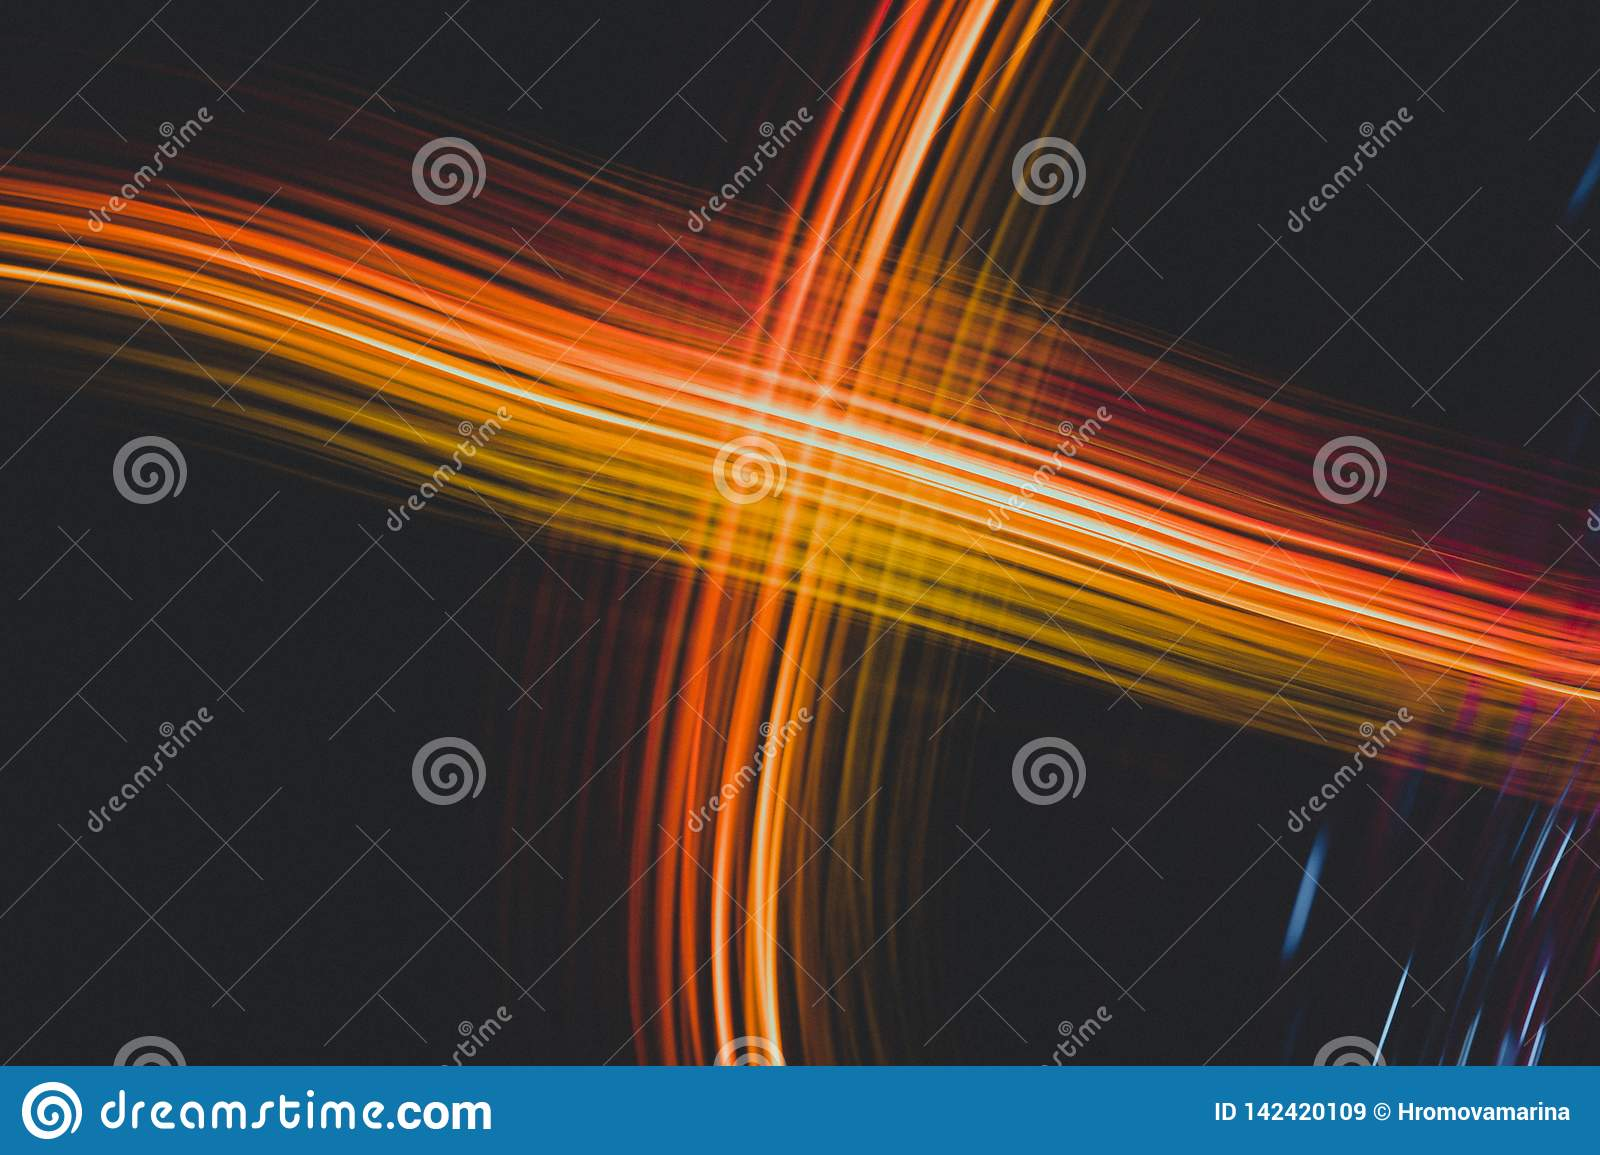 Abstract orange light stripes on a black background, the line of energy